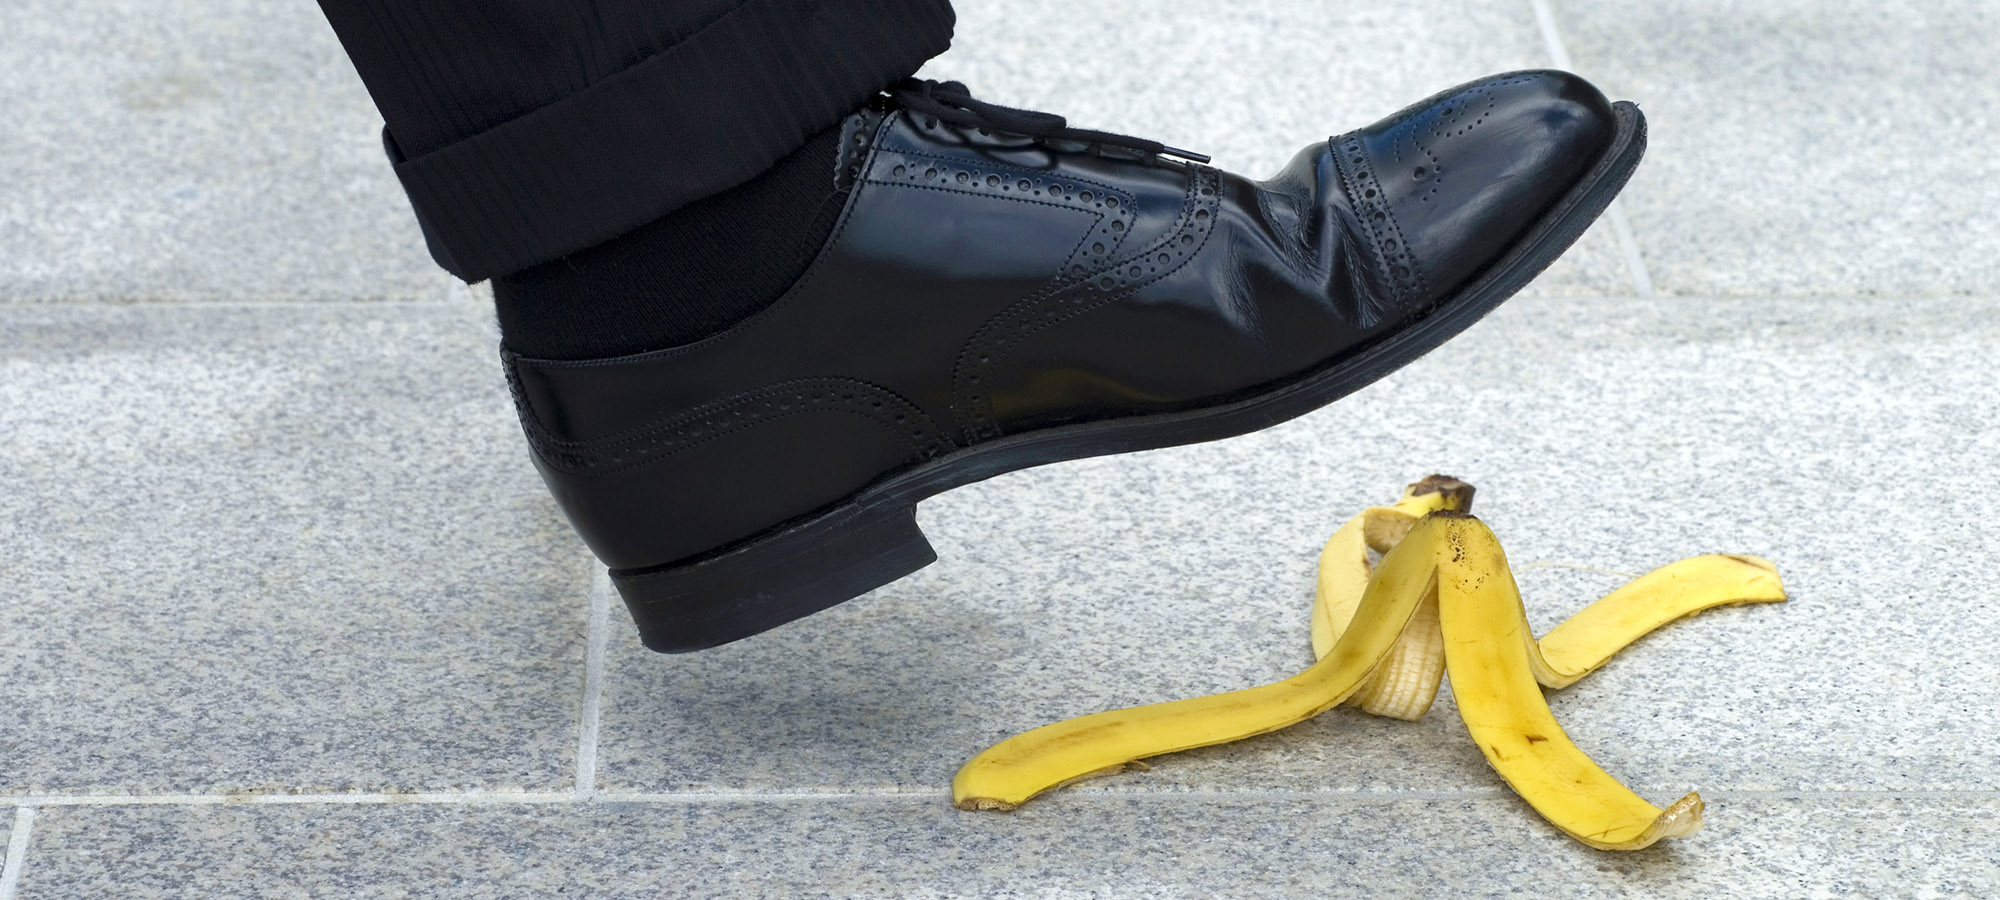 Man with dress shoe about to step on banana peel